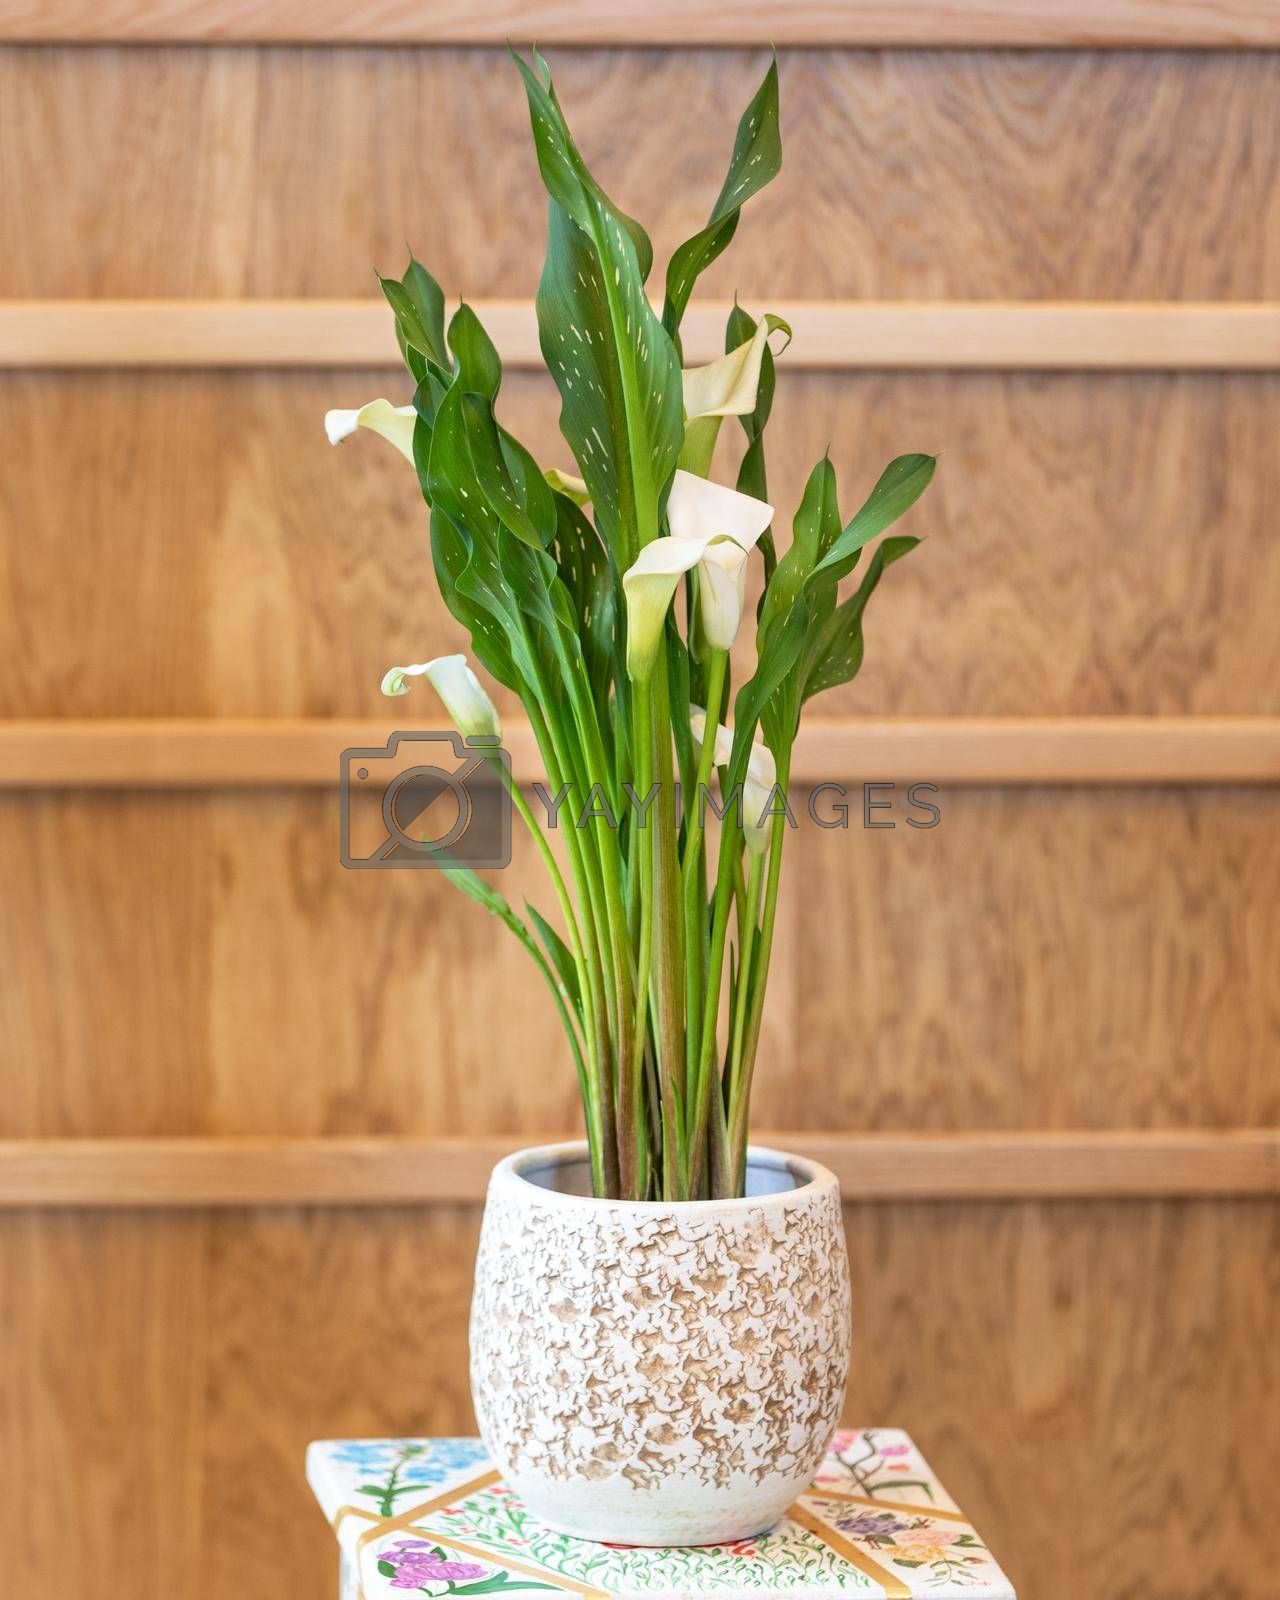 Arum lily in the white pot